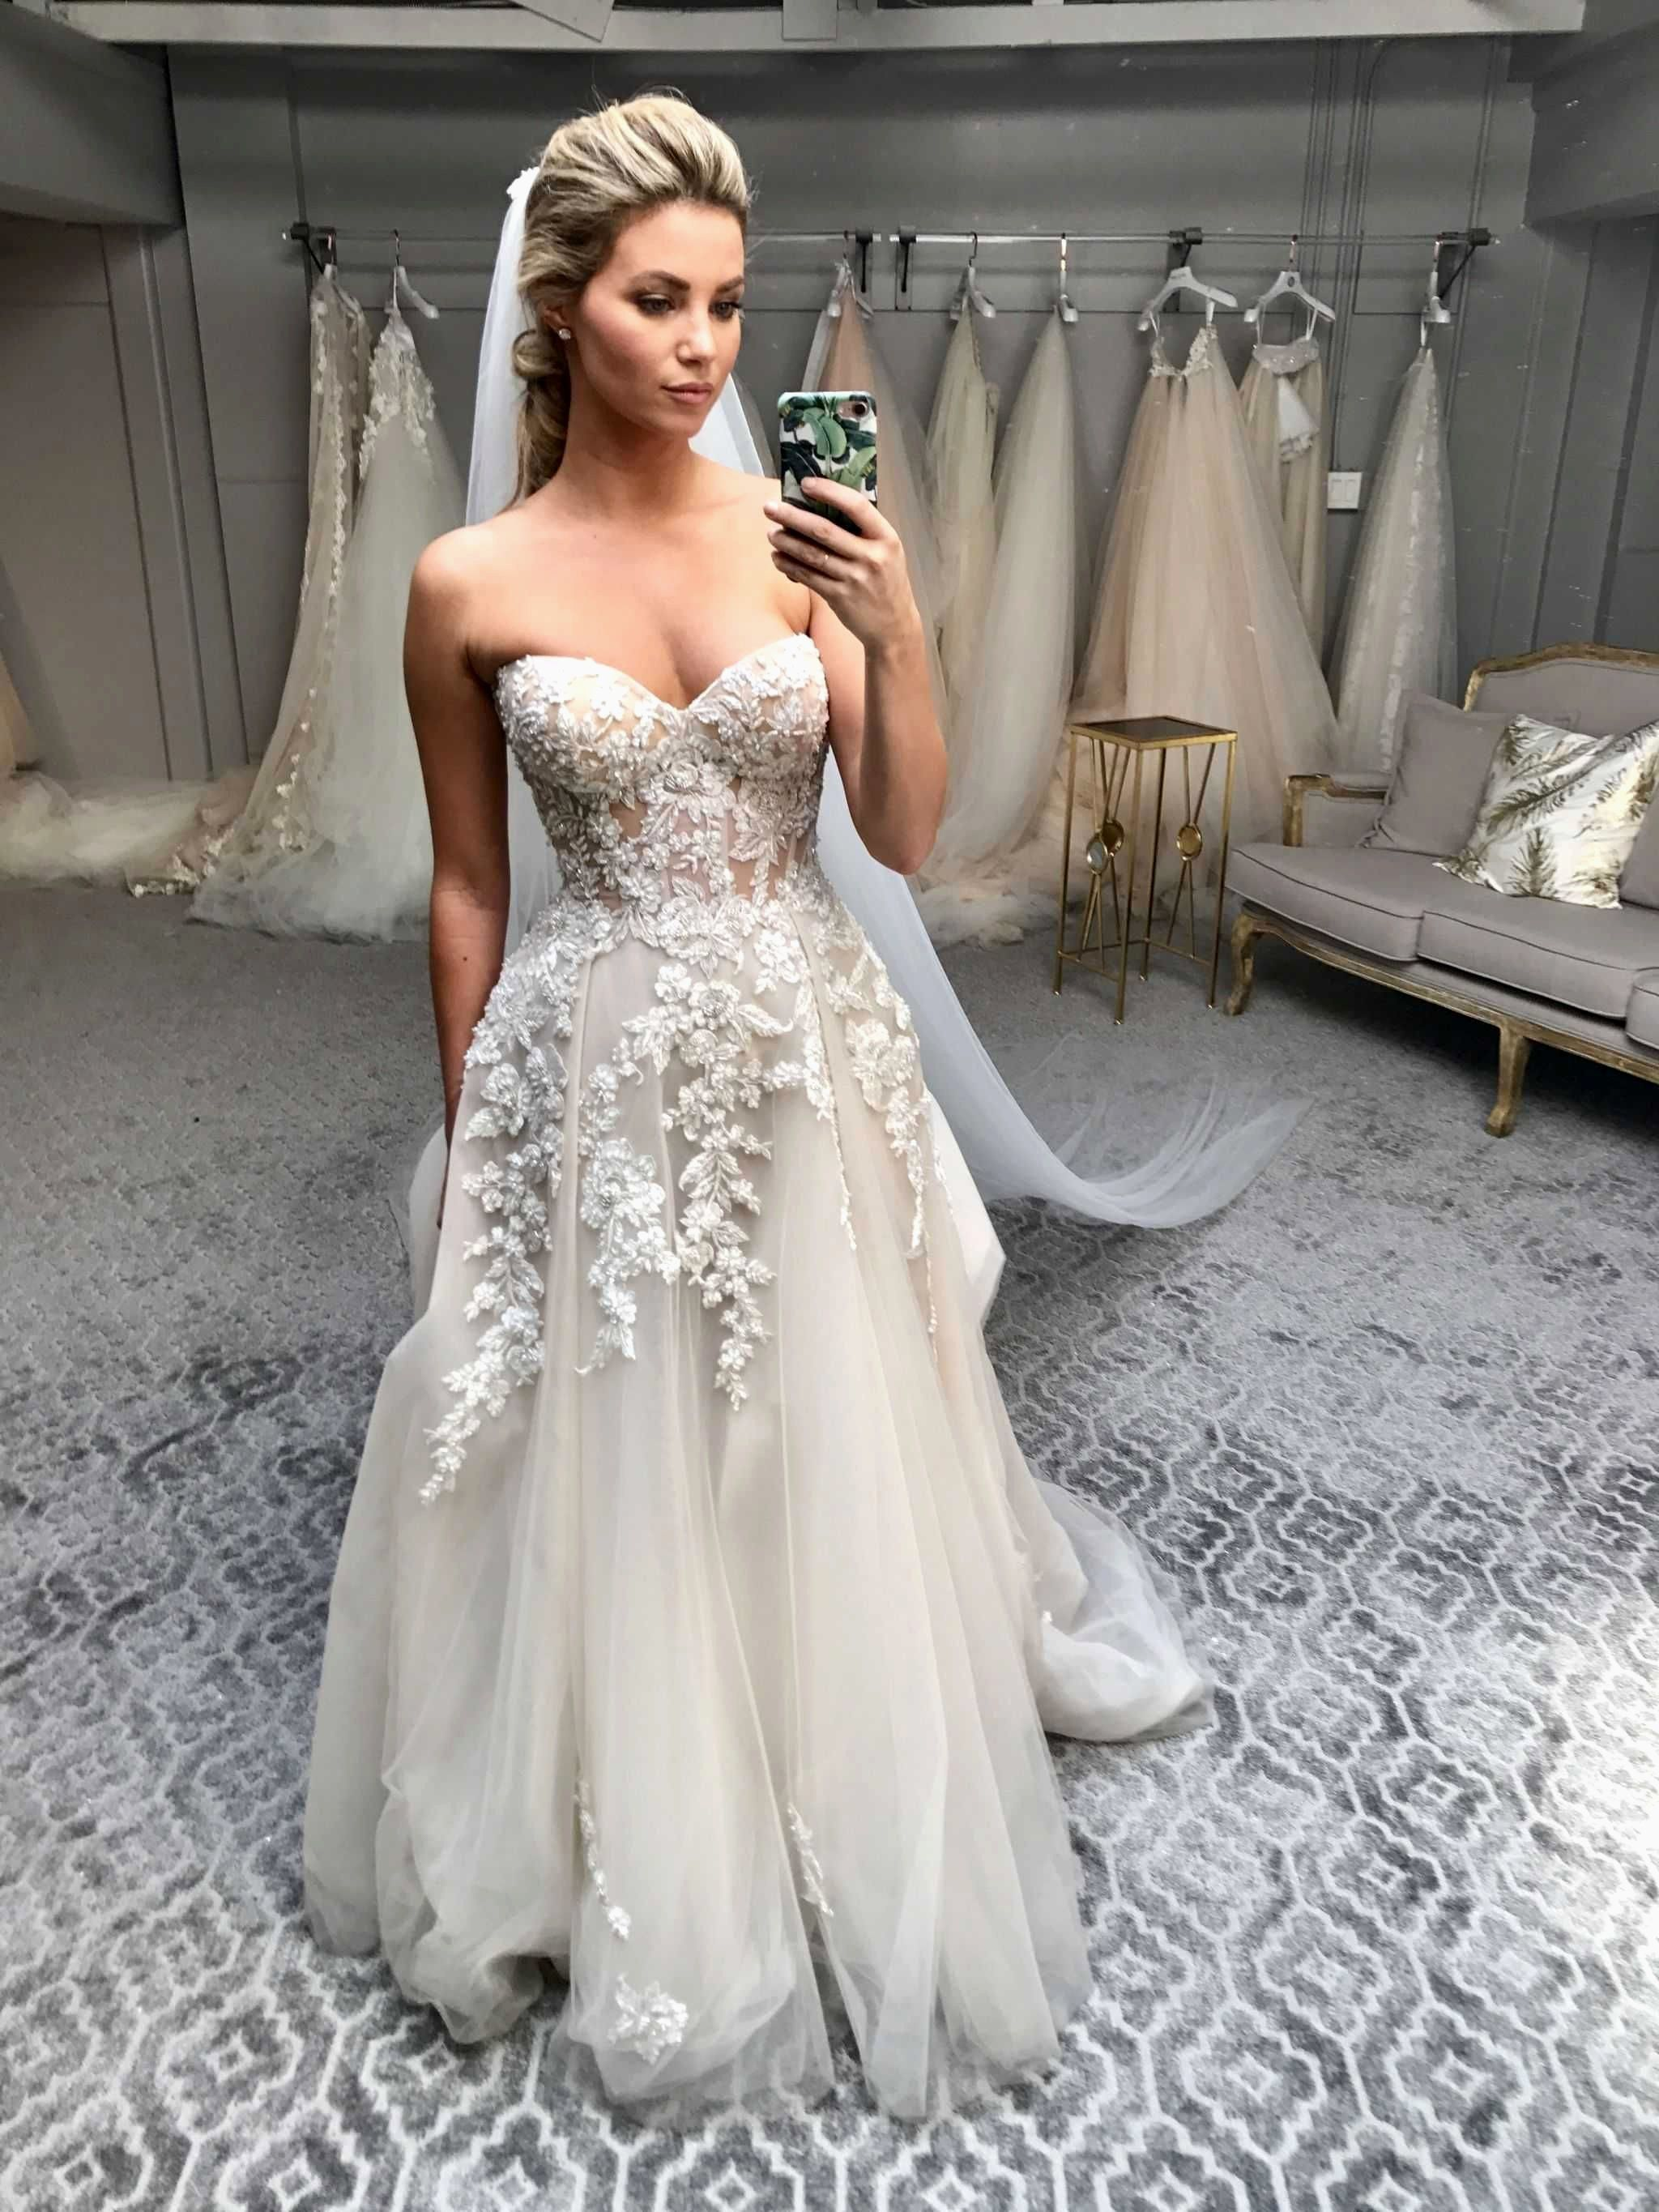 Pin By Wedsocial On Bridal Fashion Dresses Wedding Dress Cost Black Wedding Dresses Wedding Dress Sizes